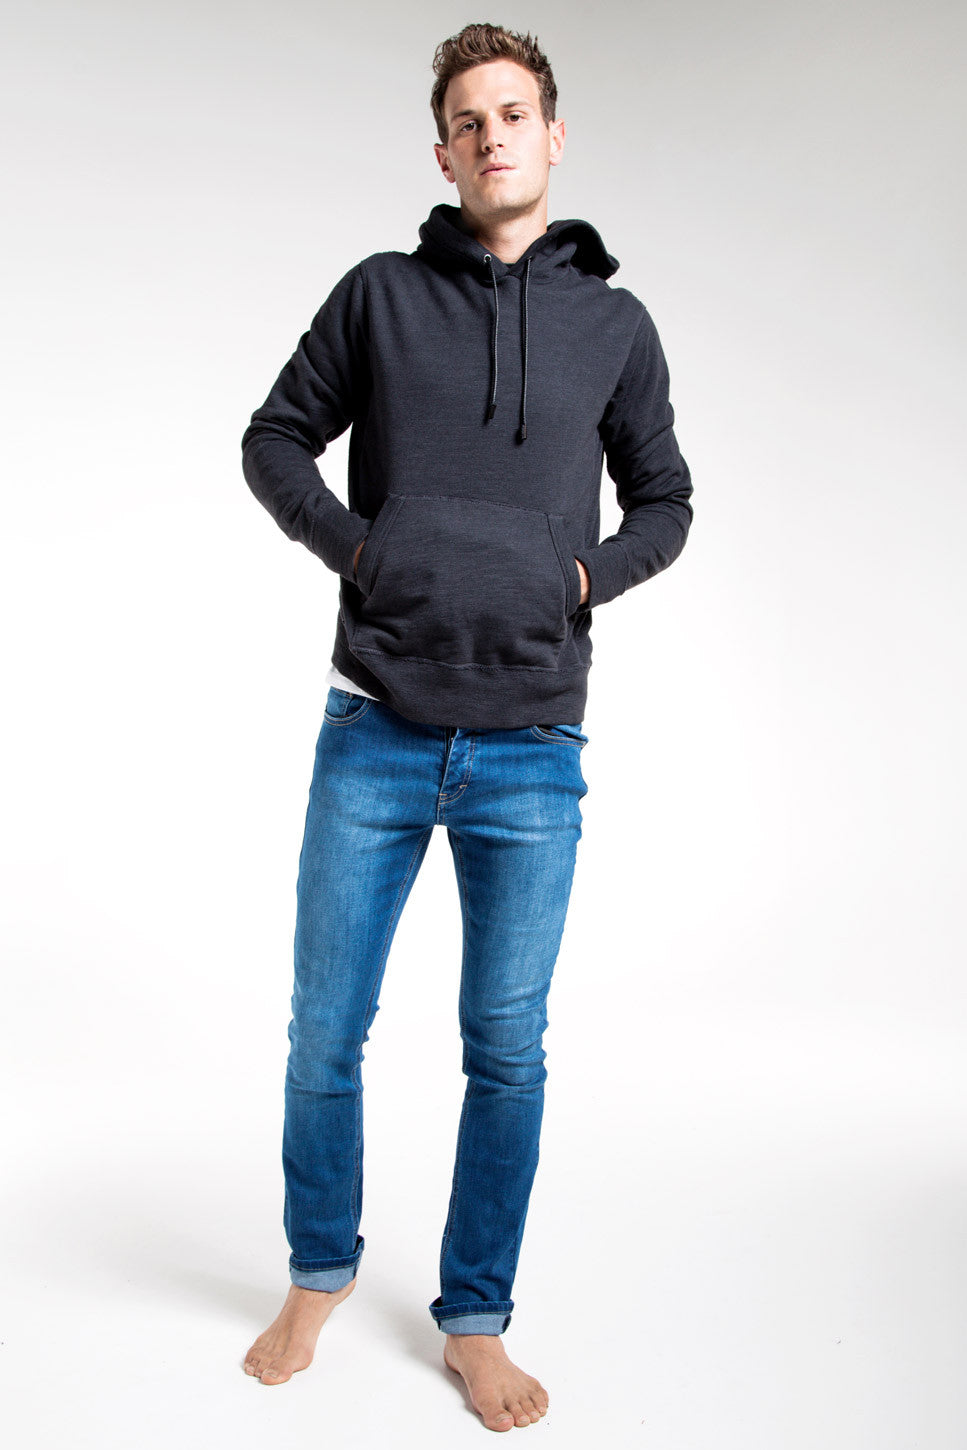 The Hooded Pullover Sweatshirt